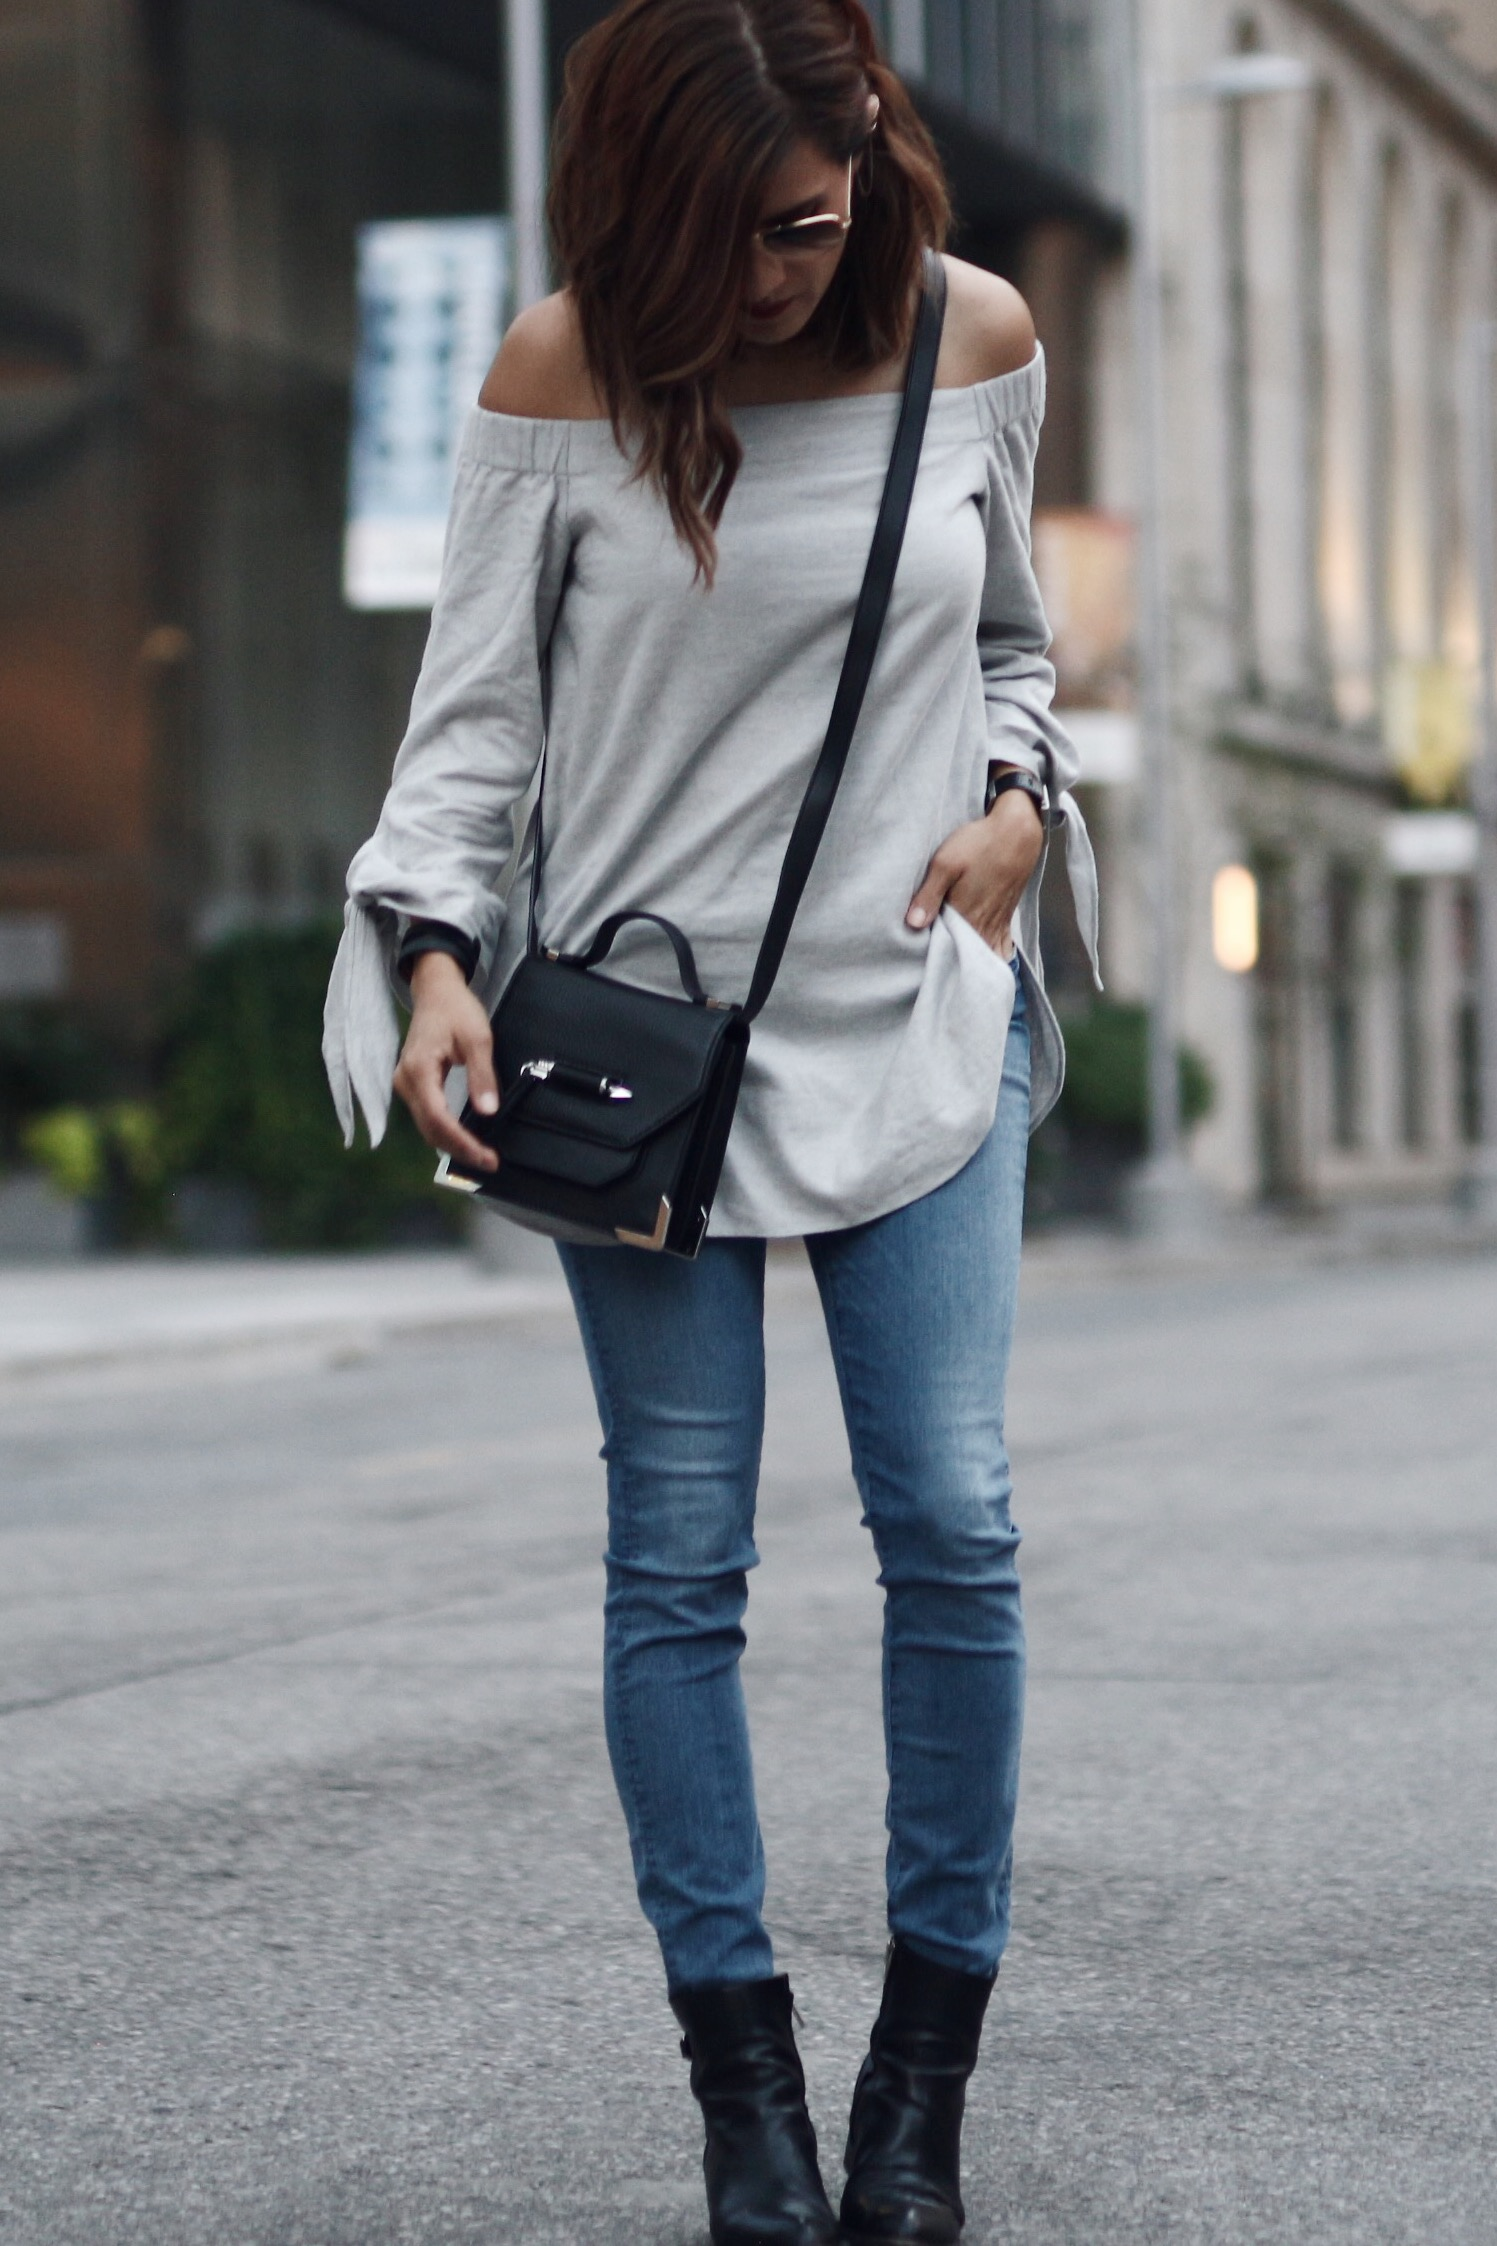 THE MOST FLATTERING FALL TREND YOU NEED TO TRY FEAT. CLUB MONACO - woahstyle.com_1029.JPG